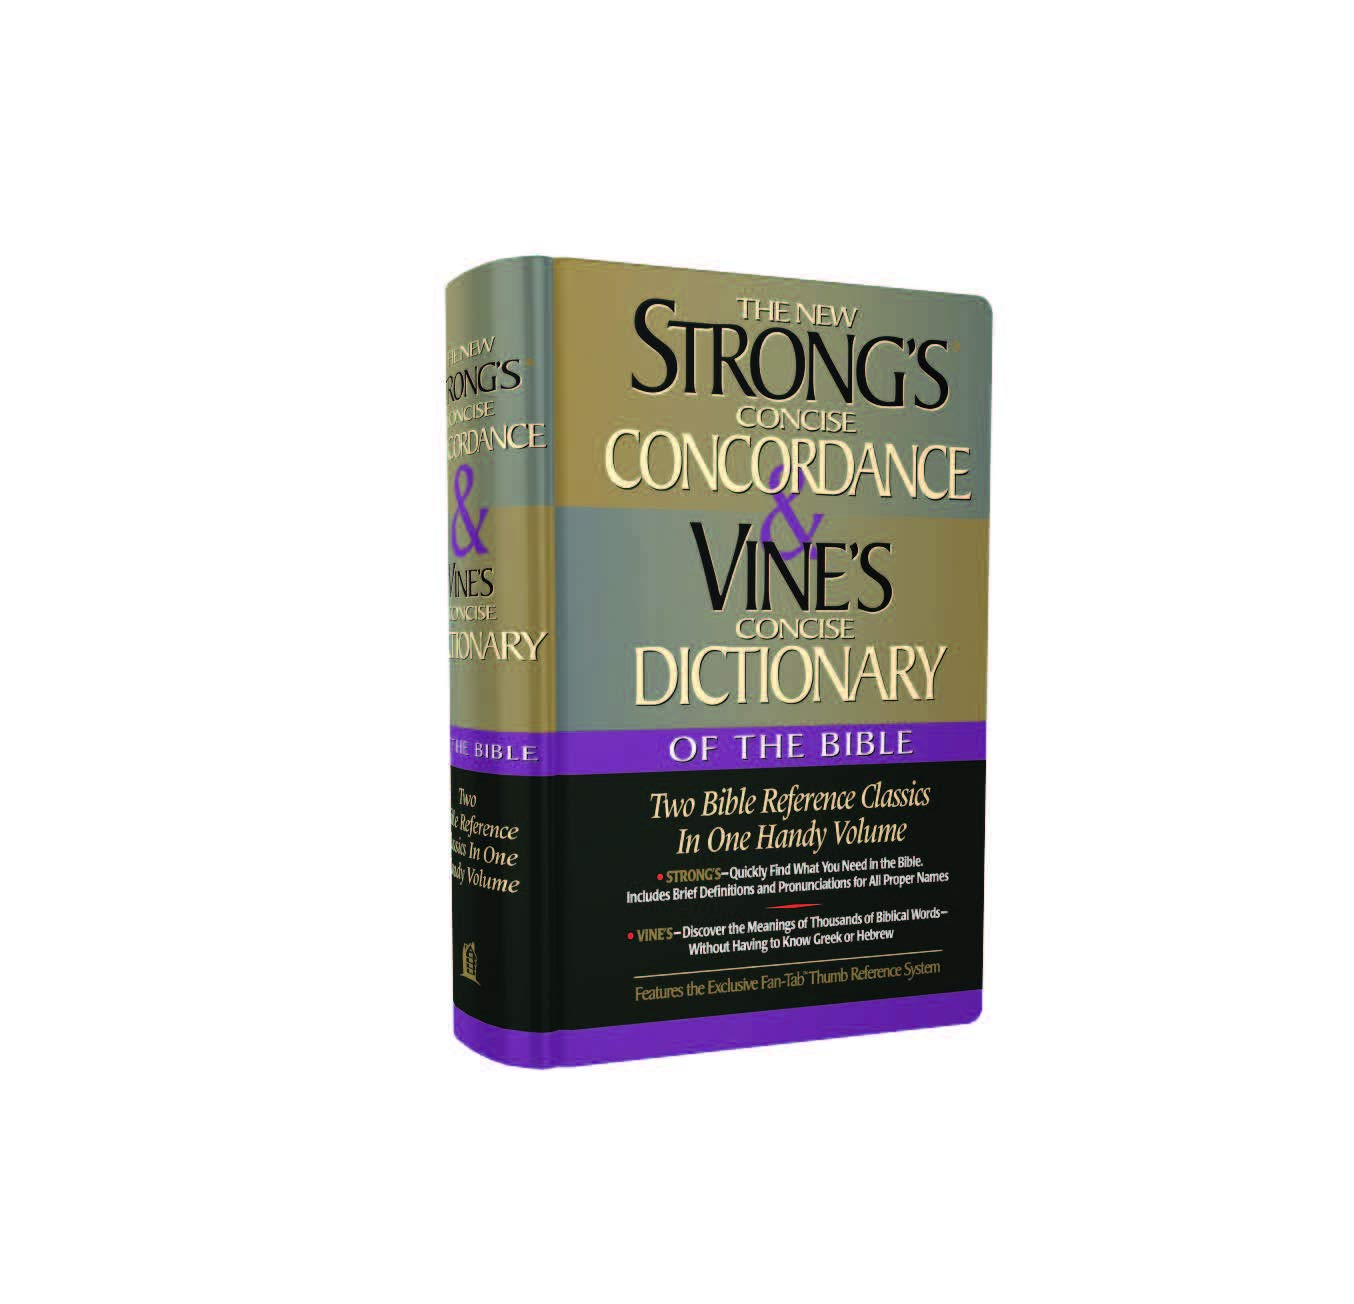 Strongs Concordance Dictionary Reference Classics